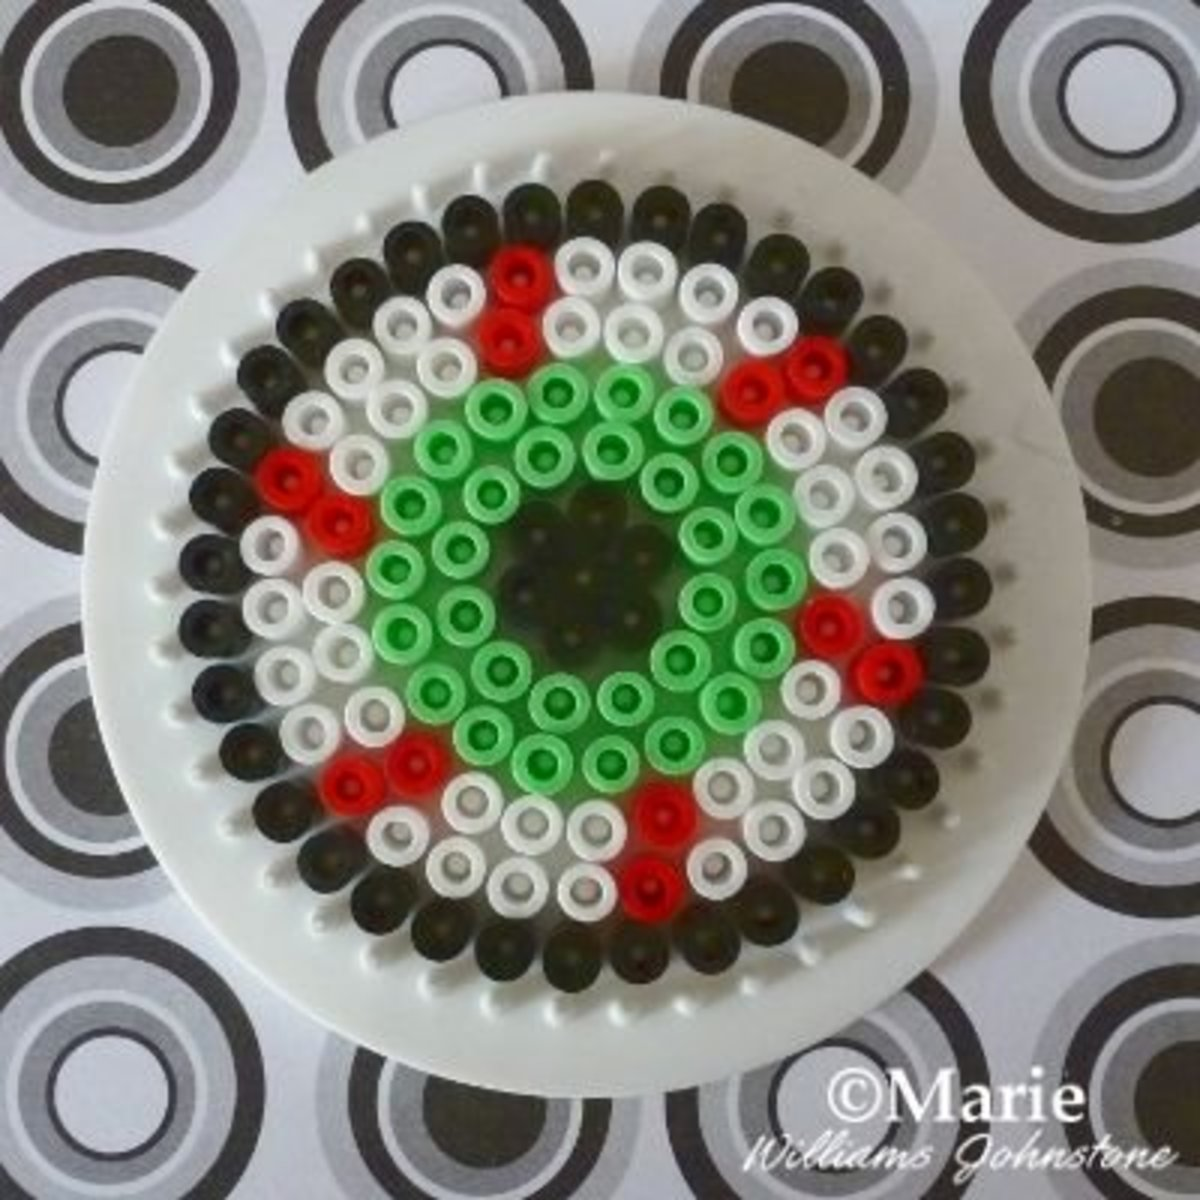 This bloodshot eye design is perfect for making Halloween coasters.